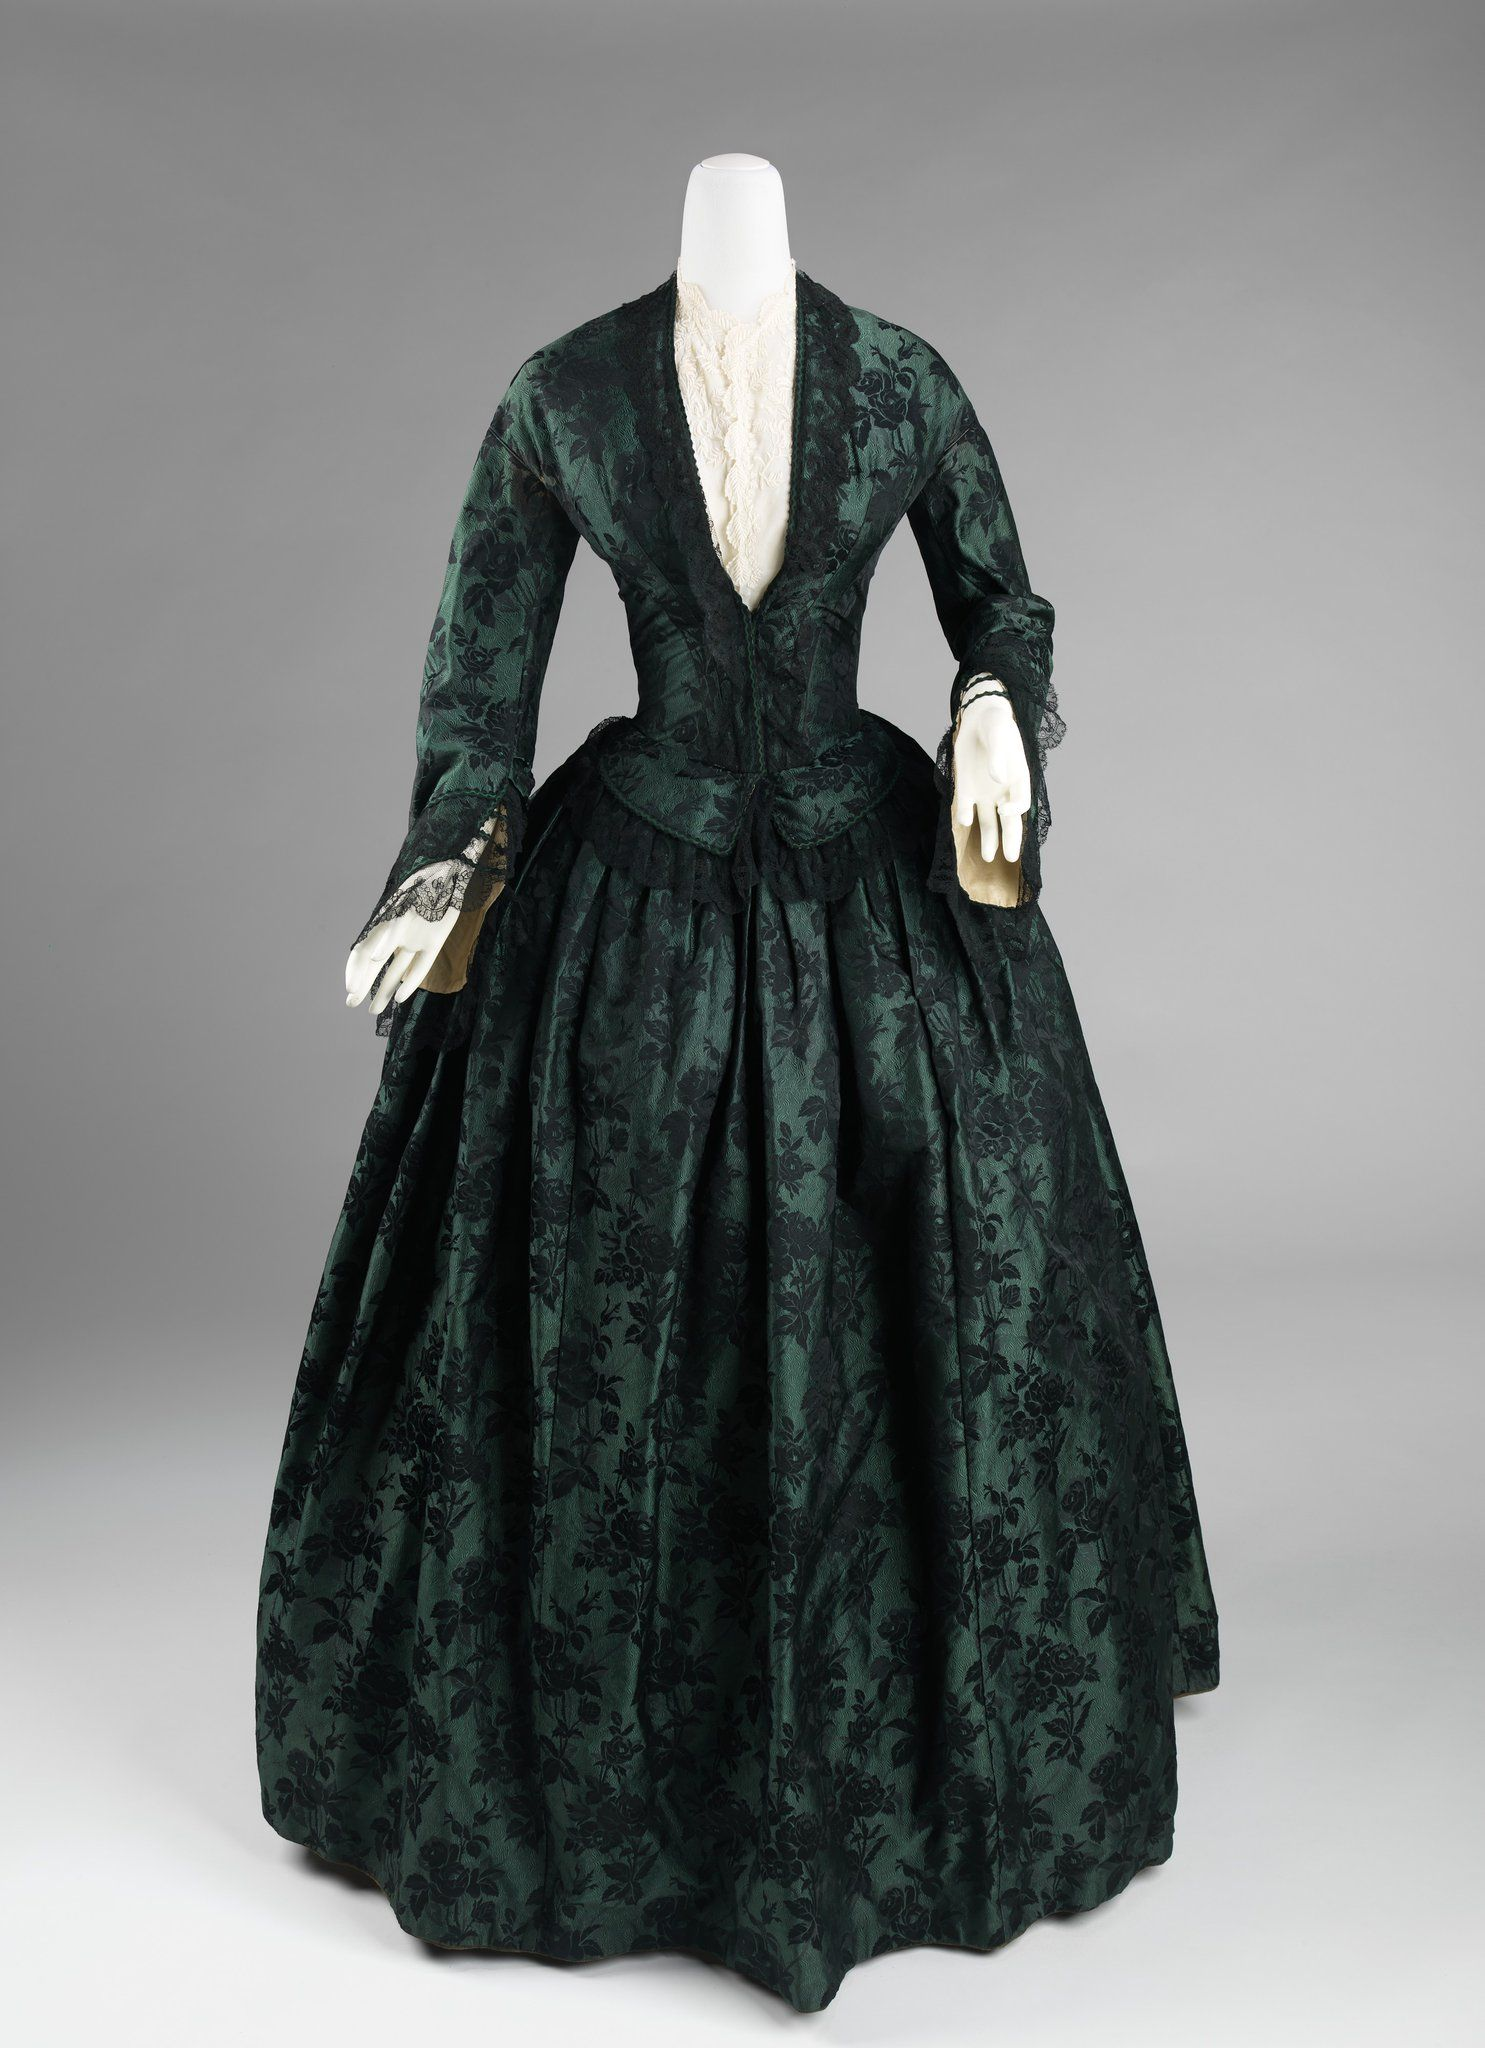 Wikivictorian On Twitter In 2021 Fashion Historical Dresses Vintage Gowns [ 2048 x 1485 Pixel ]